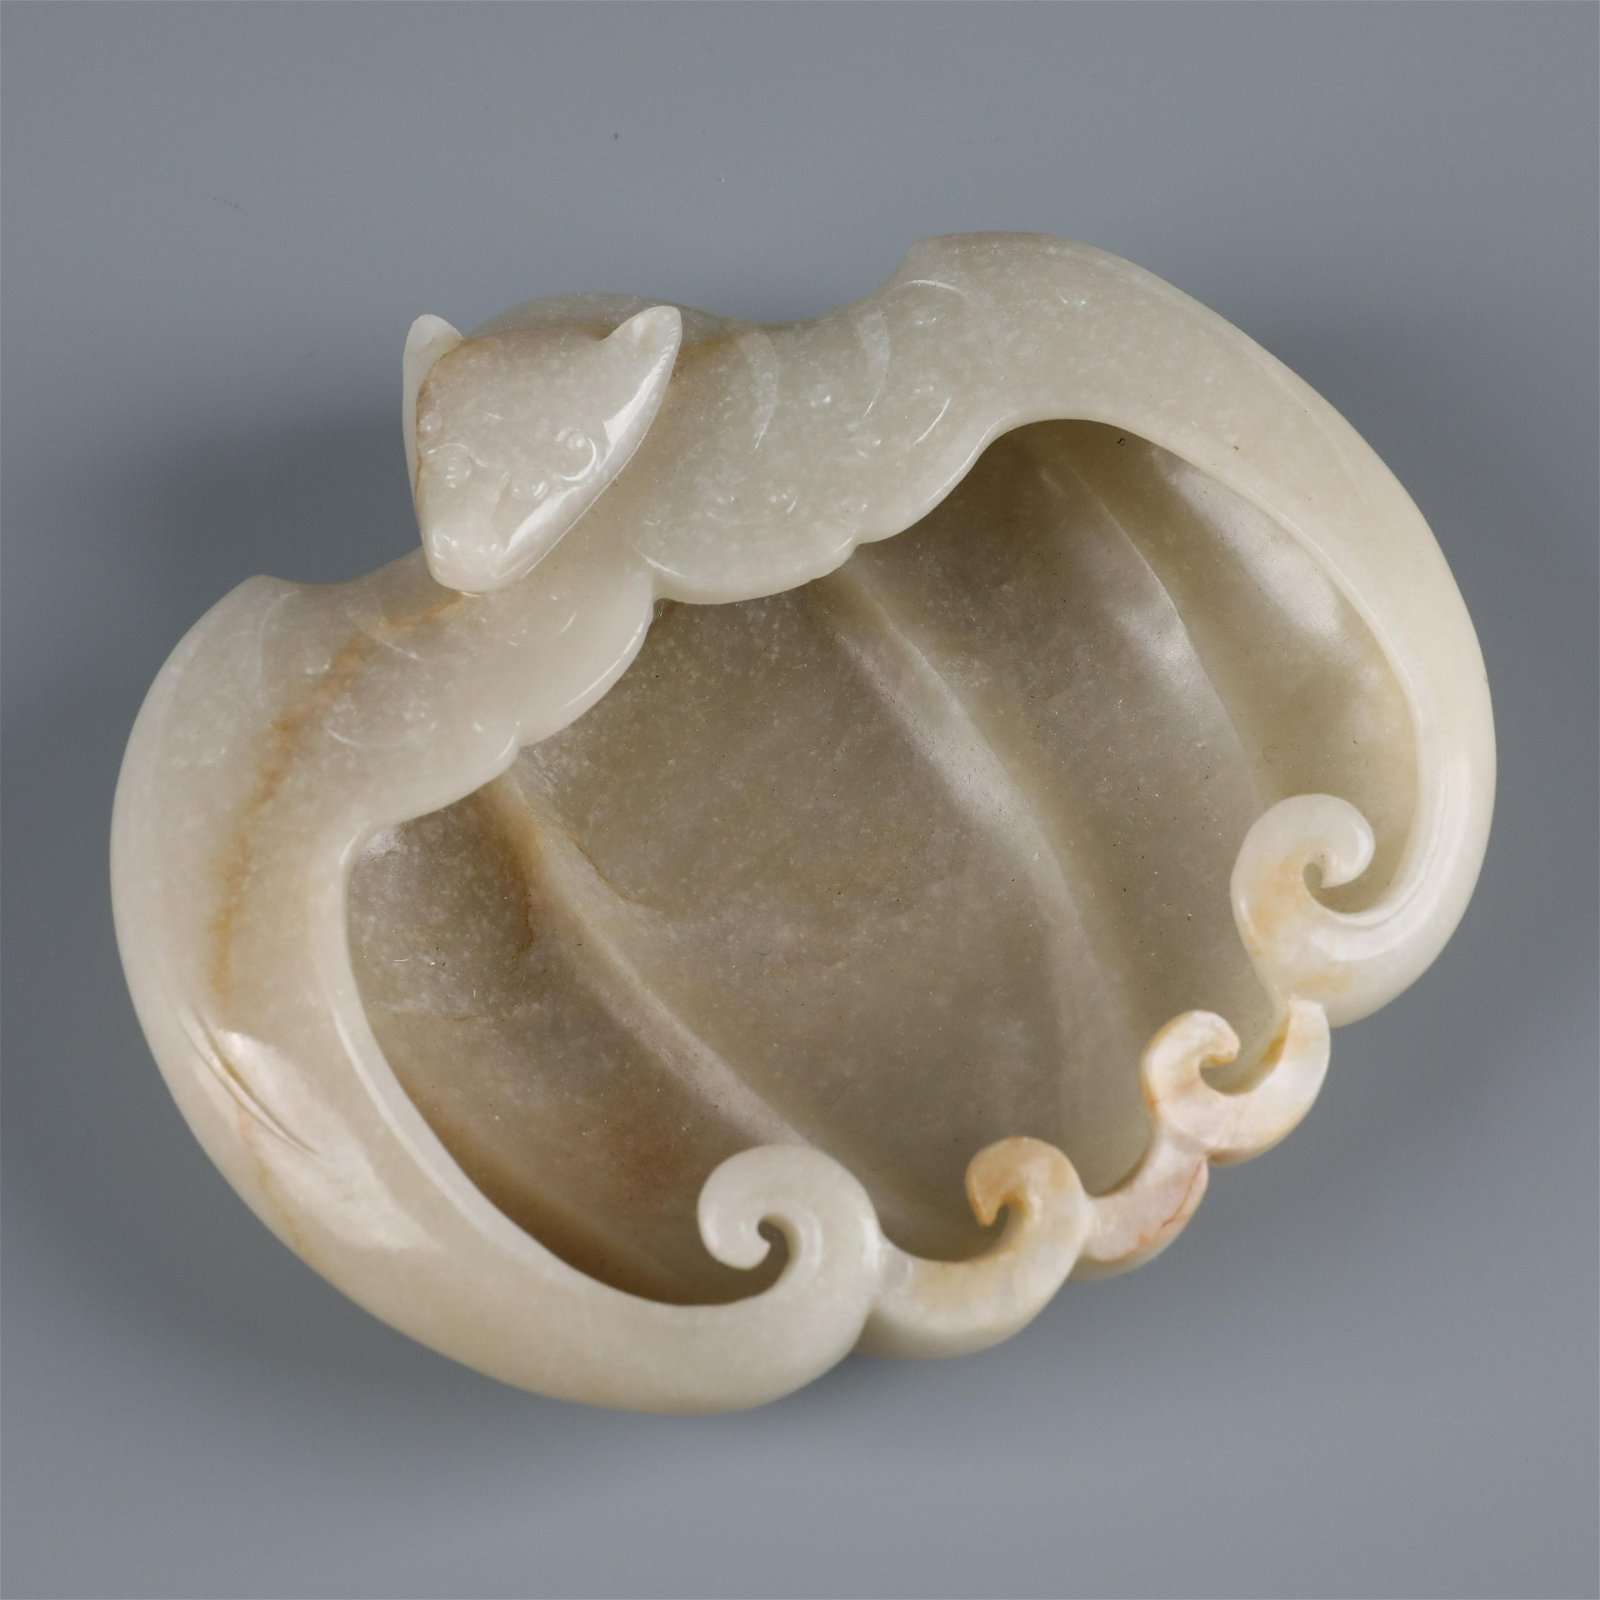 A Fine Chinese Carved White Jade Bat Brush Washer